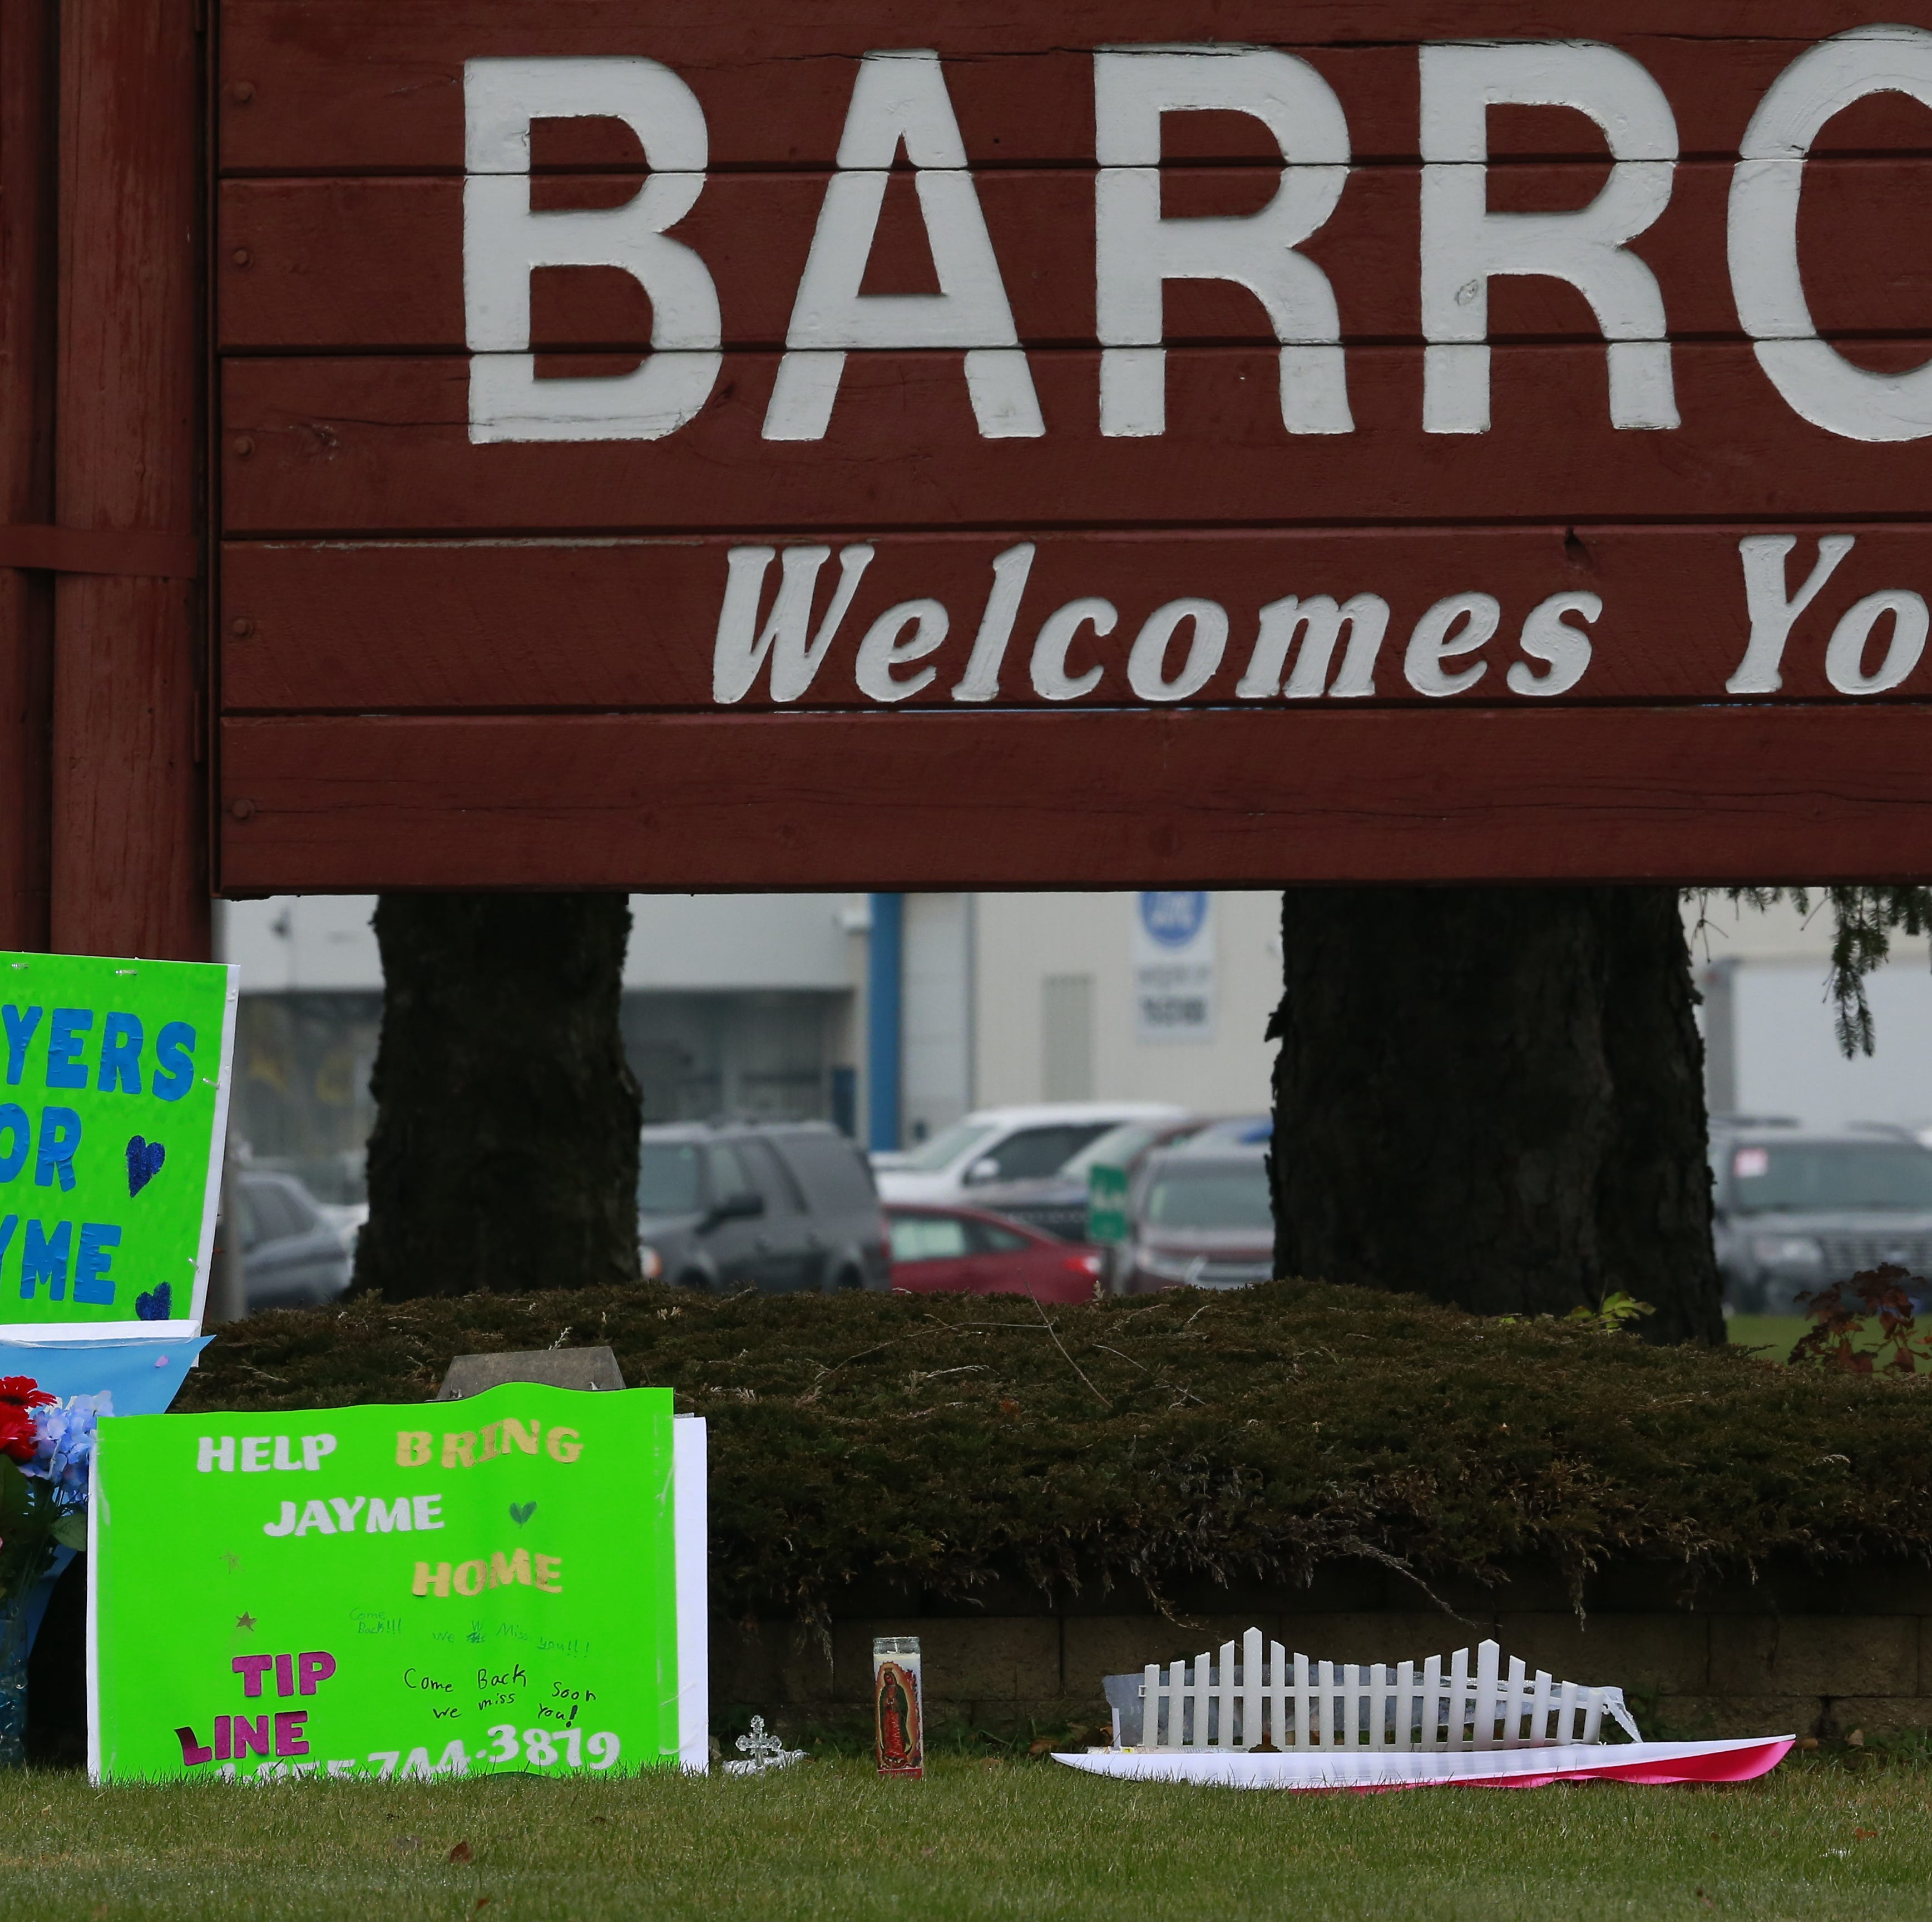 Barron in limbo as one month passes since Jayme Closs disappearance, parents' murders